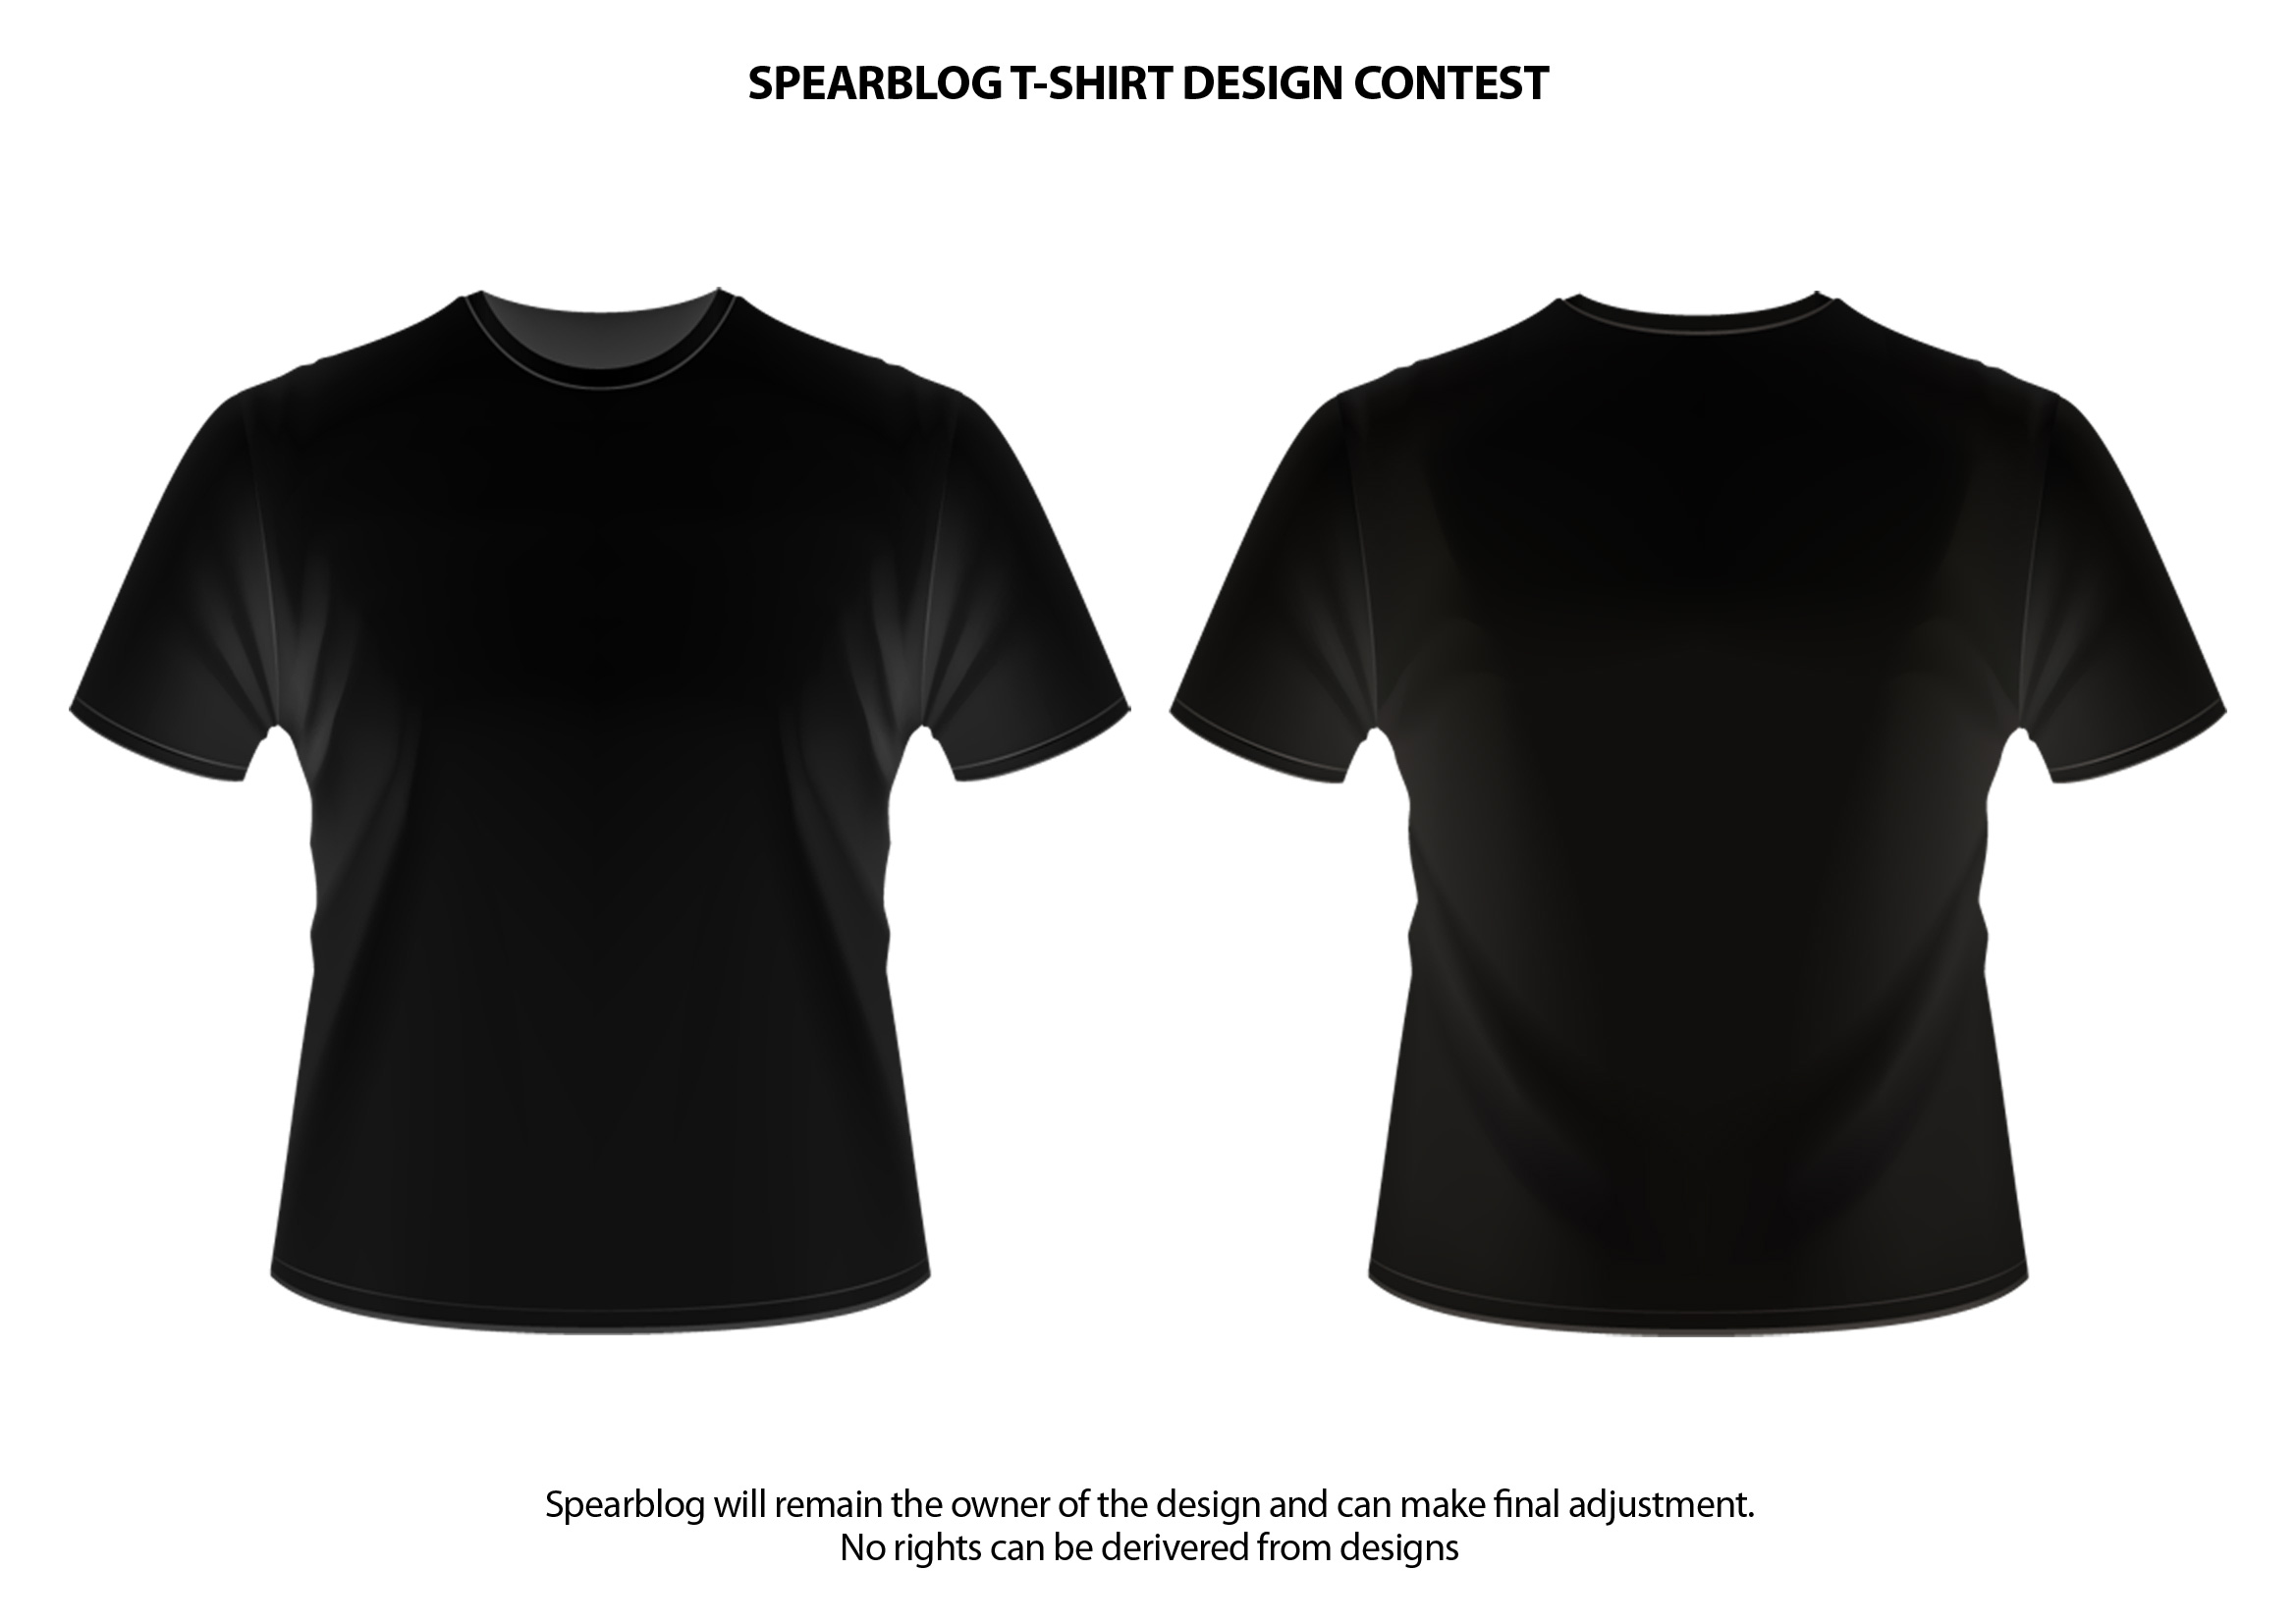 Black T Shirt Design Template - Design a shirt template